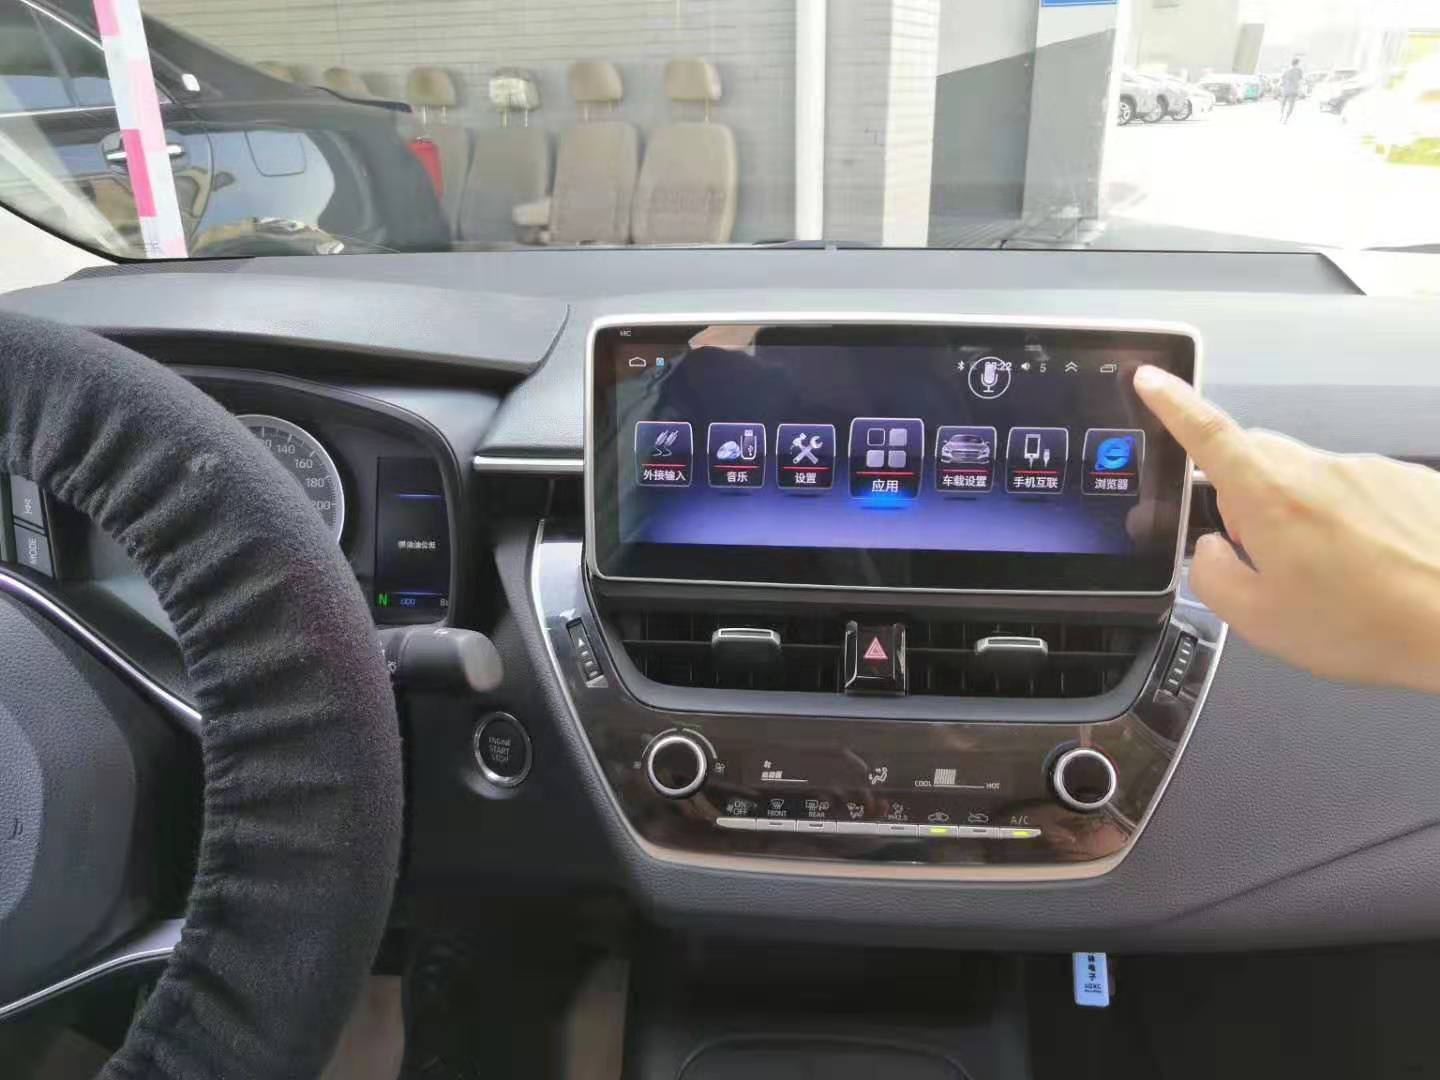 10.25 Inch Android Car Multimedia Navigation For Toyota New Corolla 2019-2020